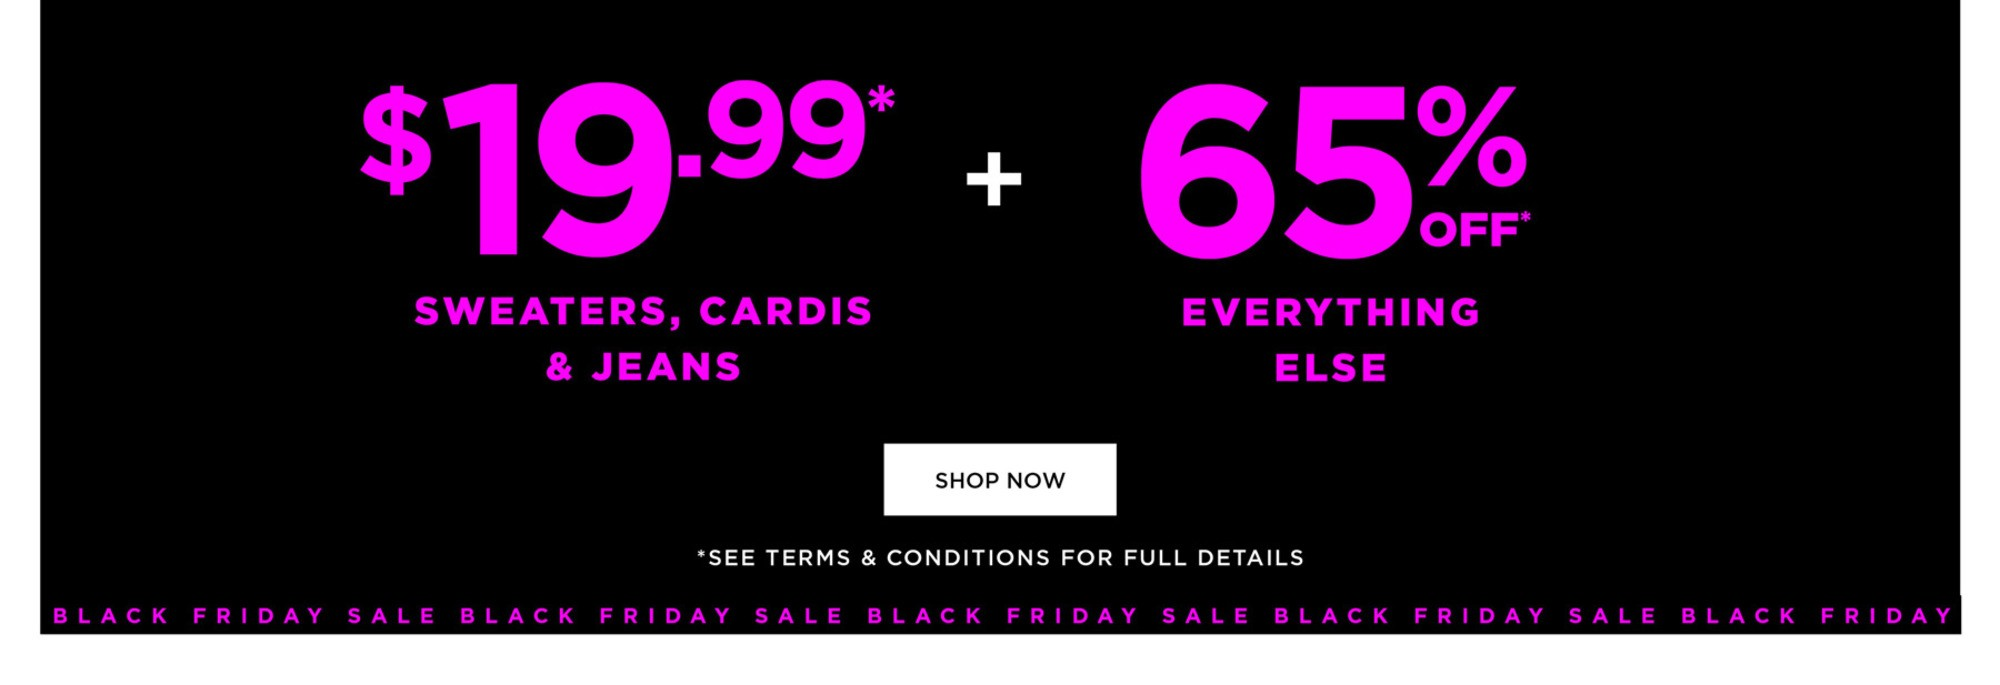 BLACK FRIDAY SALE - 24 HOUR FLASH SALE - $19.99* SWEATERS, CARDIS & JEAND   65% OFF EVERYTHING ELSE* - SHOP NOW - *See Terms & Conditions for Full Details, Excludes City Chic